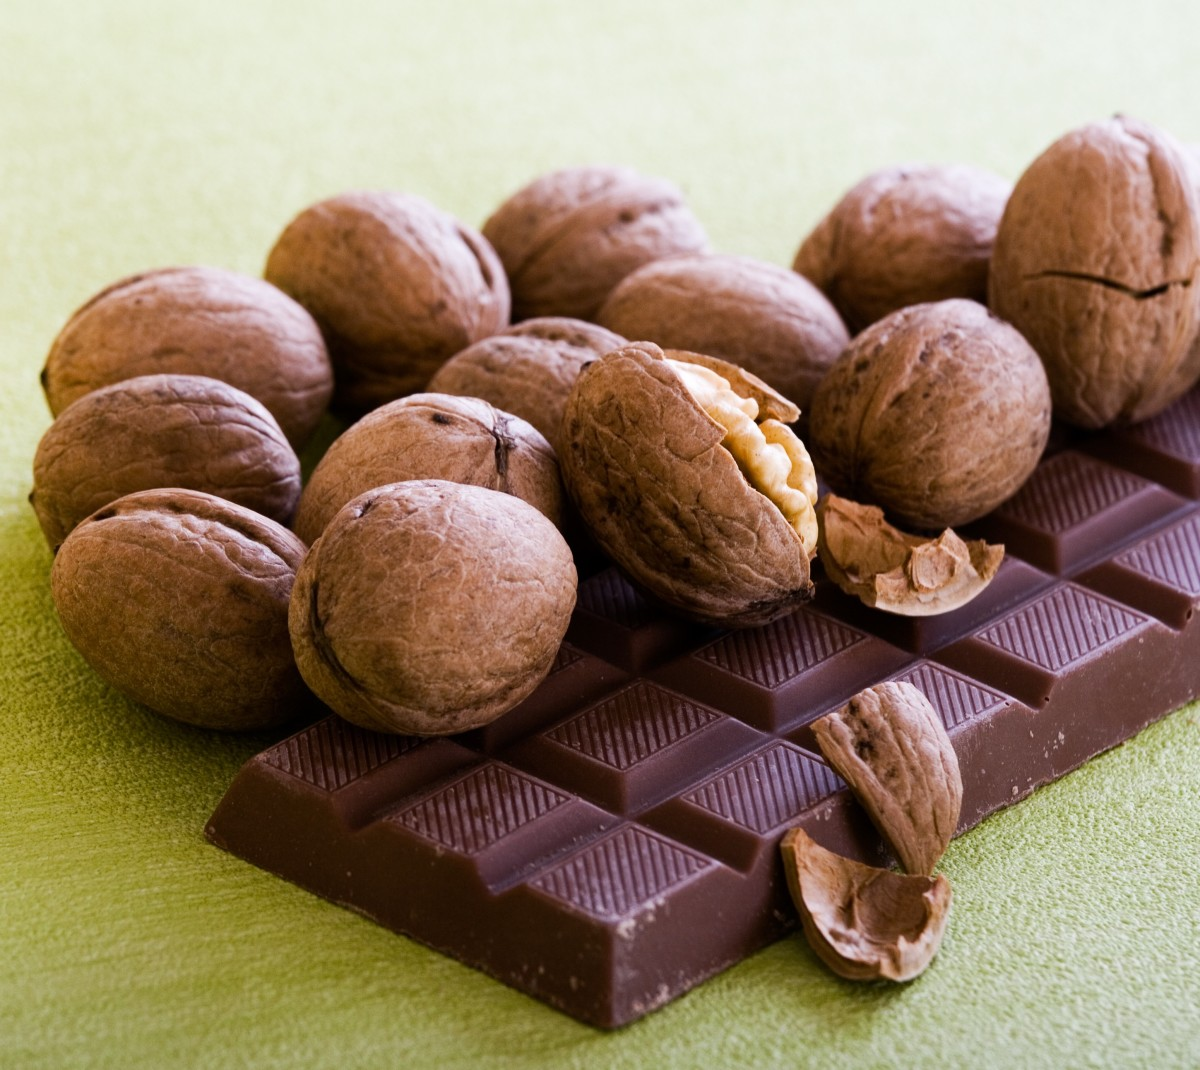 What can you make with your cocoa beans?